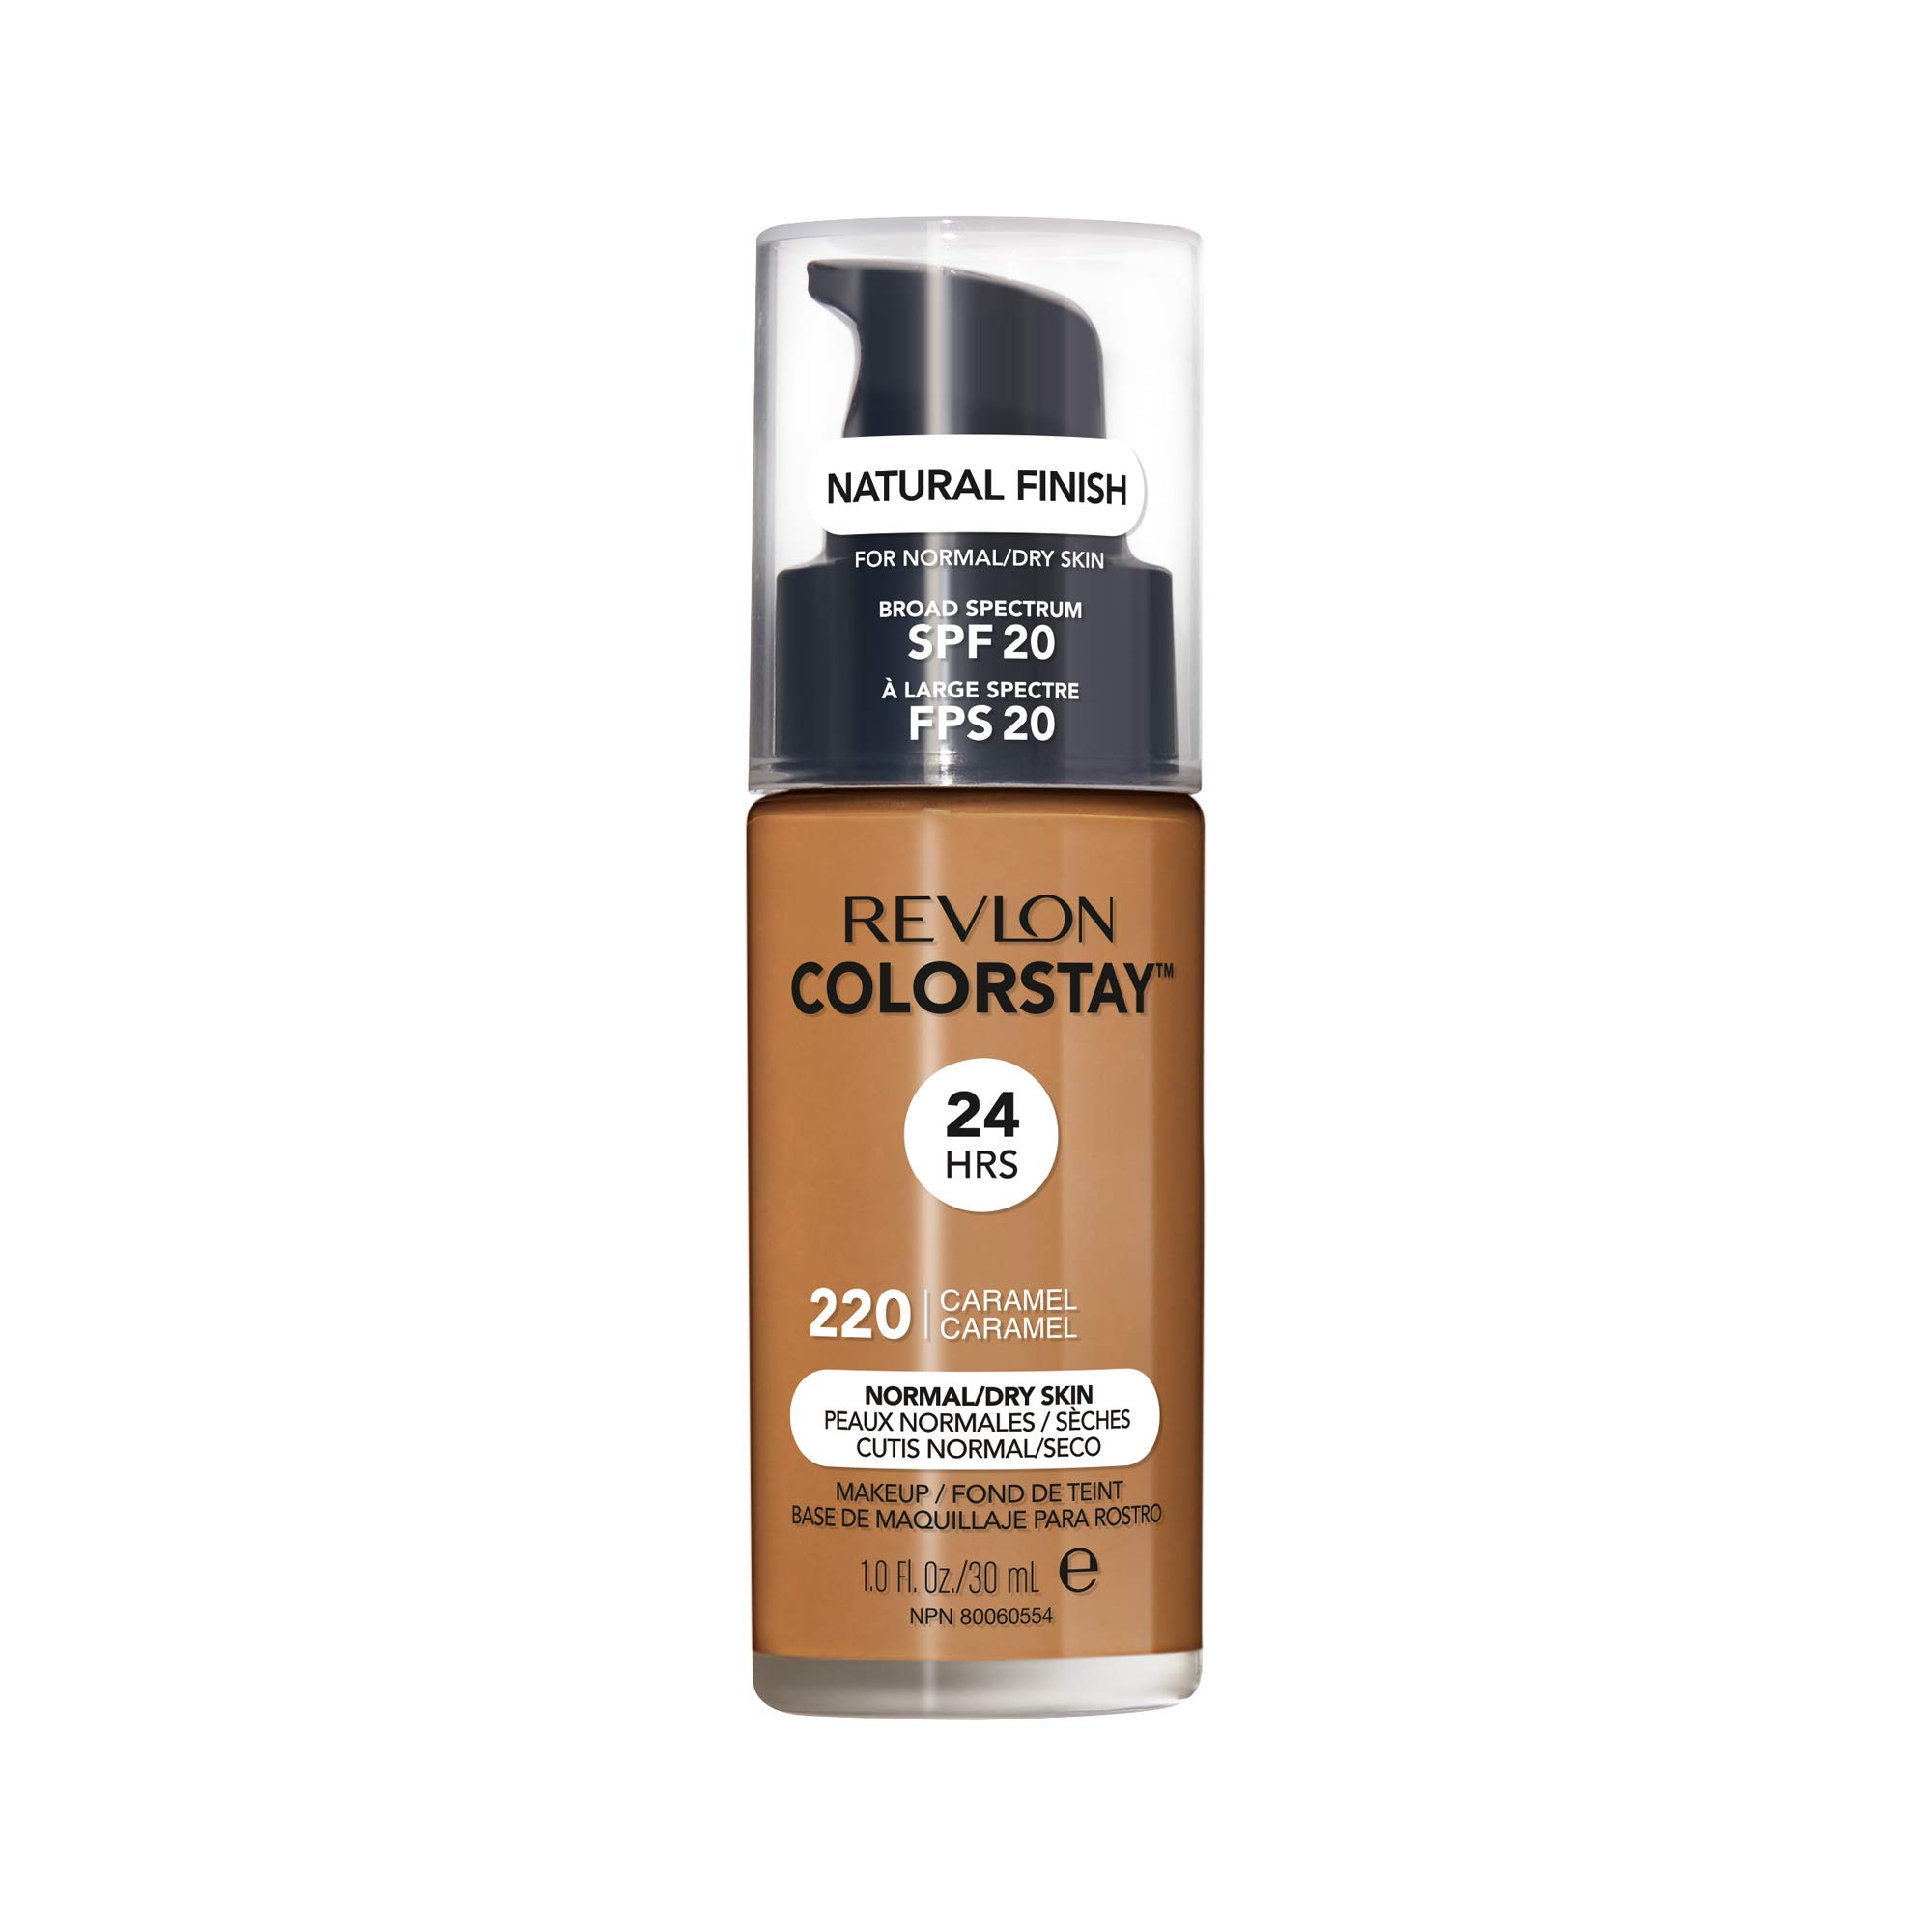 Revlon ColorStay Makeup for Normal/Dry Skin SPF 20, Longwear Liquid Foundation, with Medium-Full Coverage, Natural Finish, Oil Free, 400 Caramel, 1.0 oz